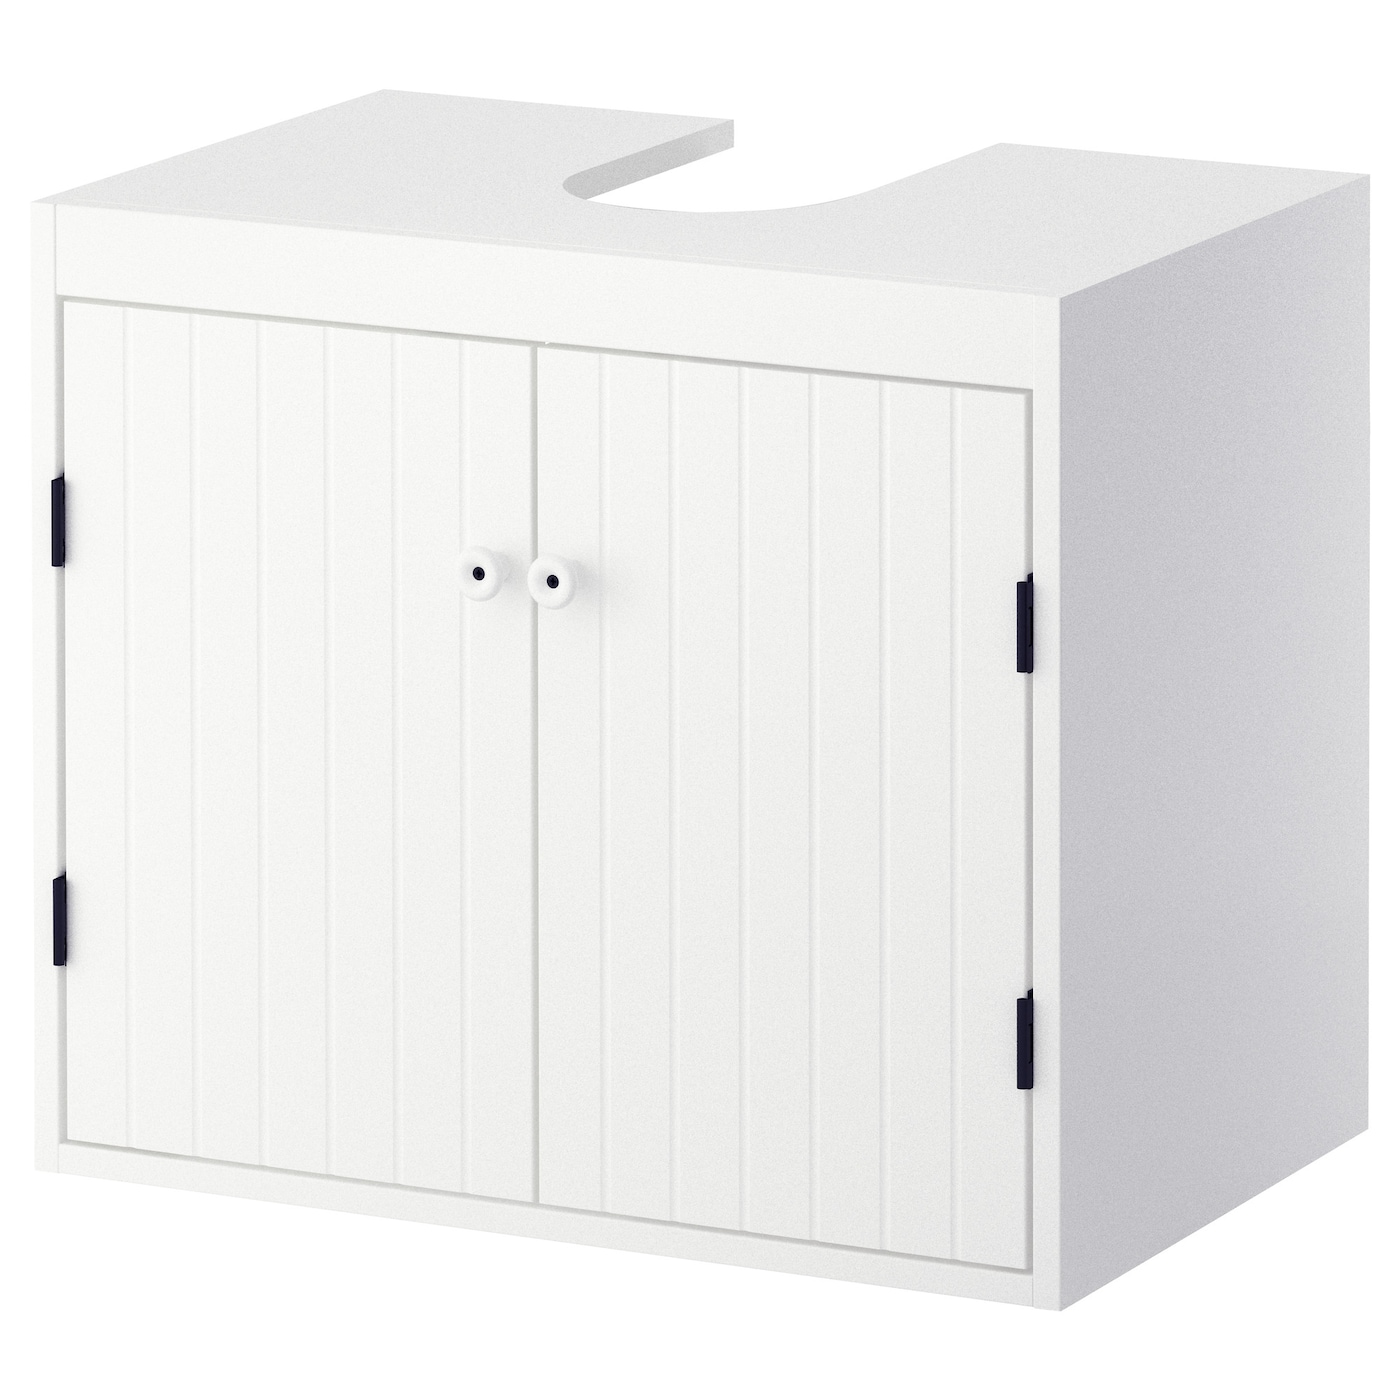 silver n l ment bas lavabo 2 portes blanc 60x38x51 cm ikea. Black Bedroom Furniture Sets. Home Design Ideas